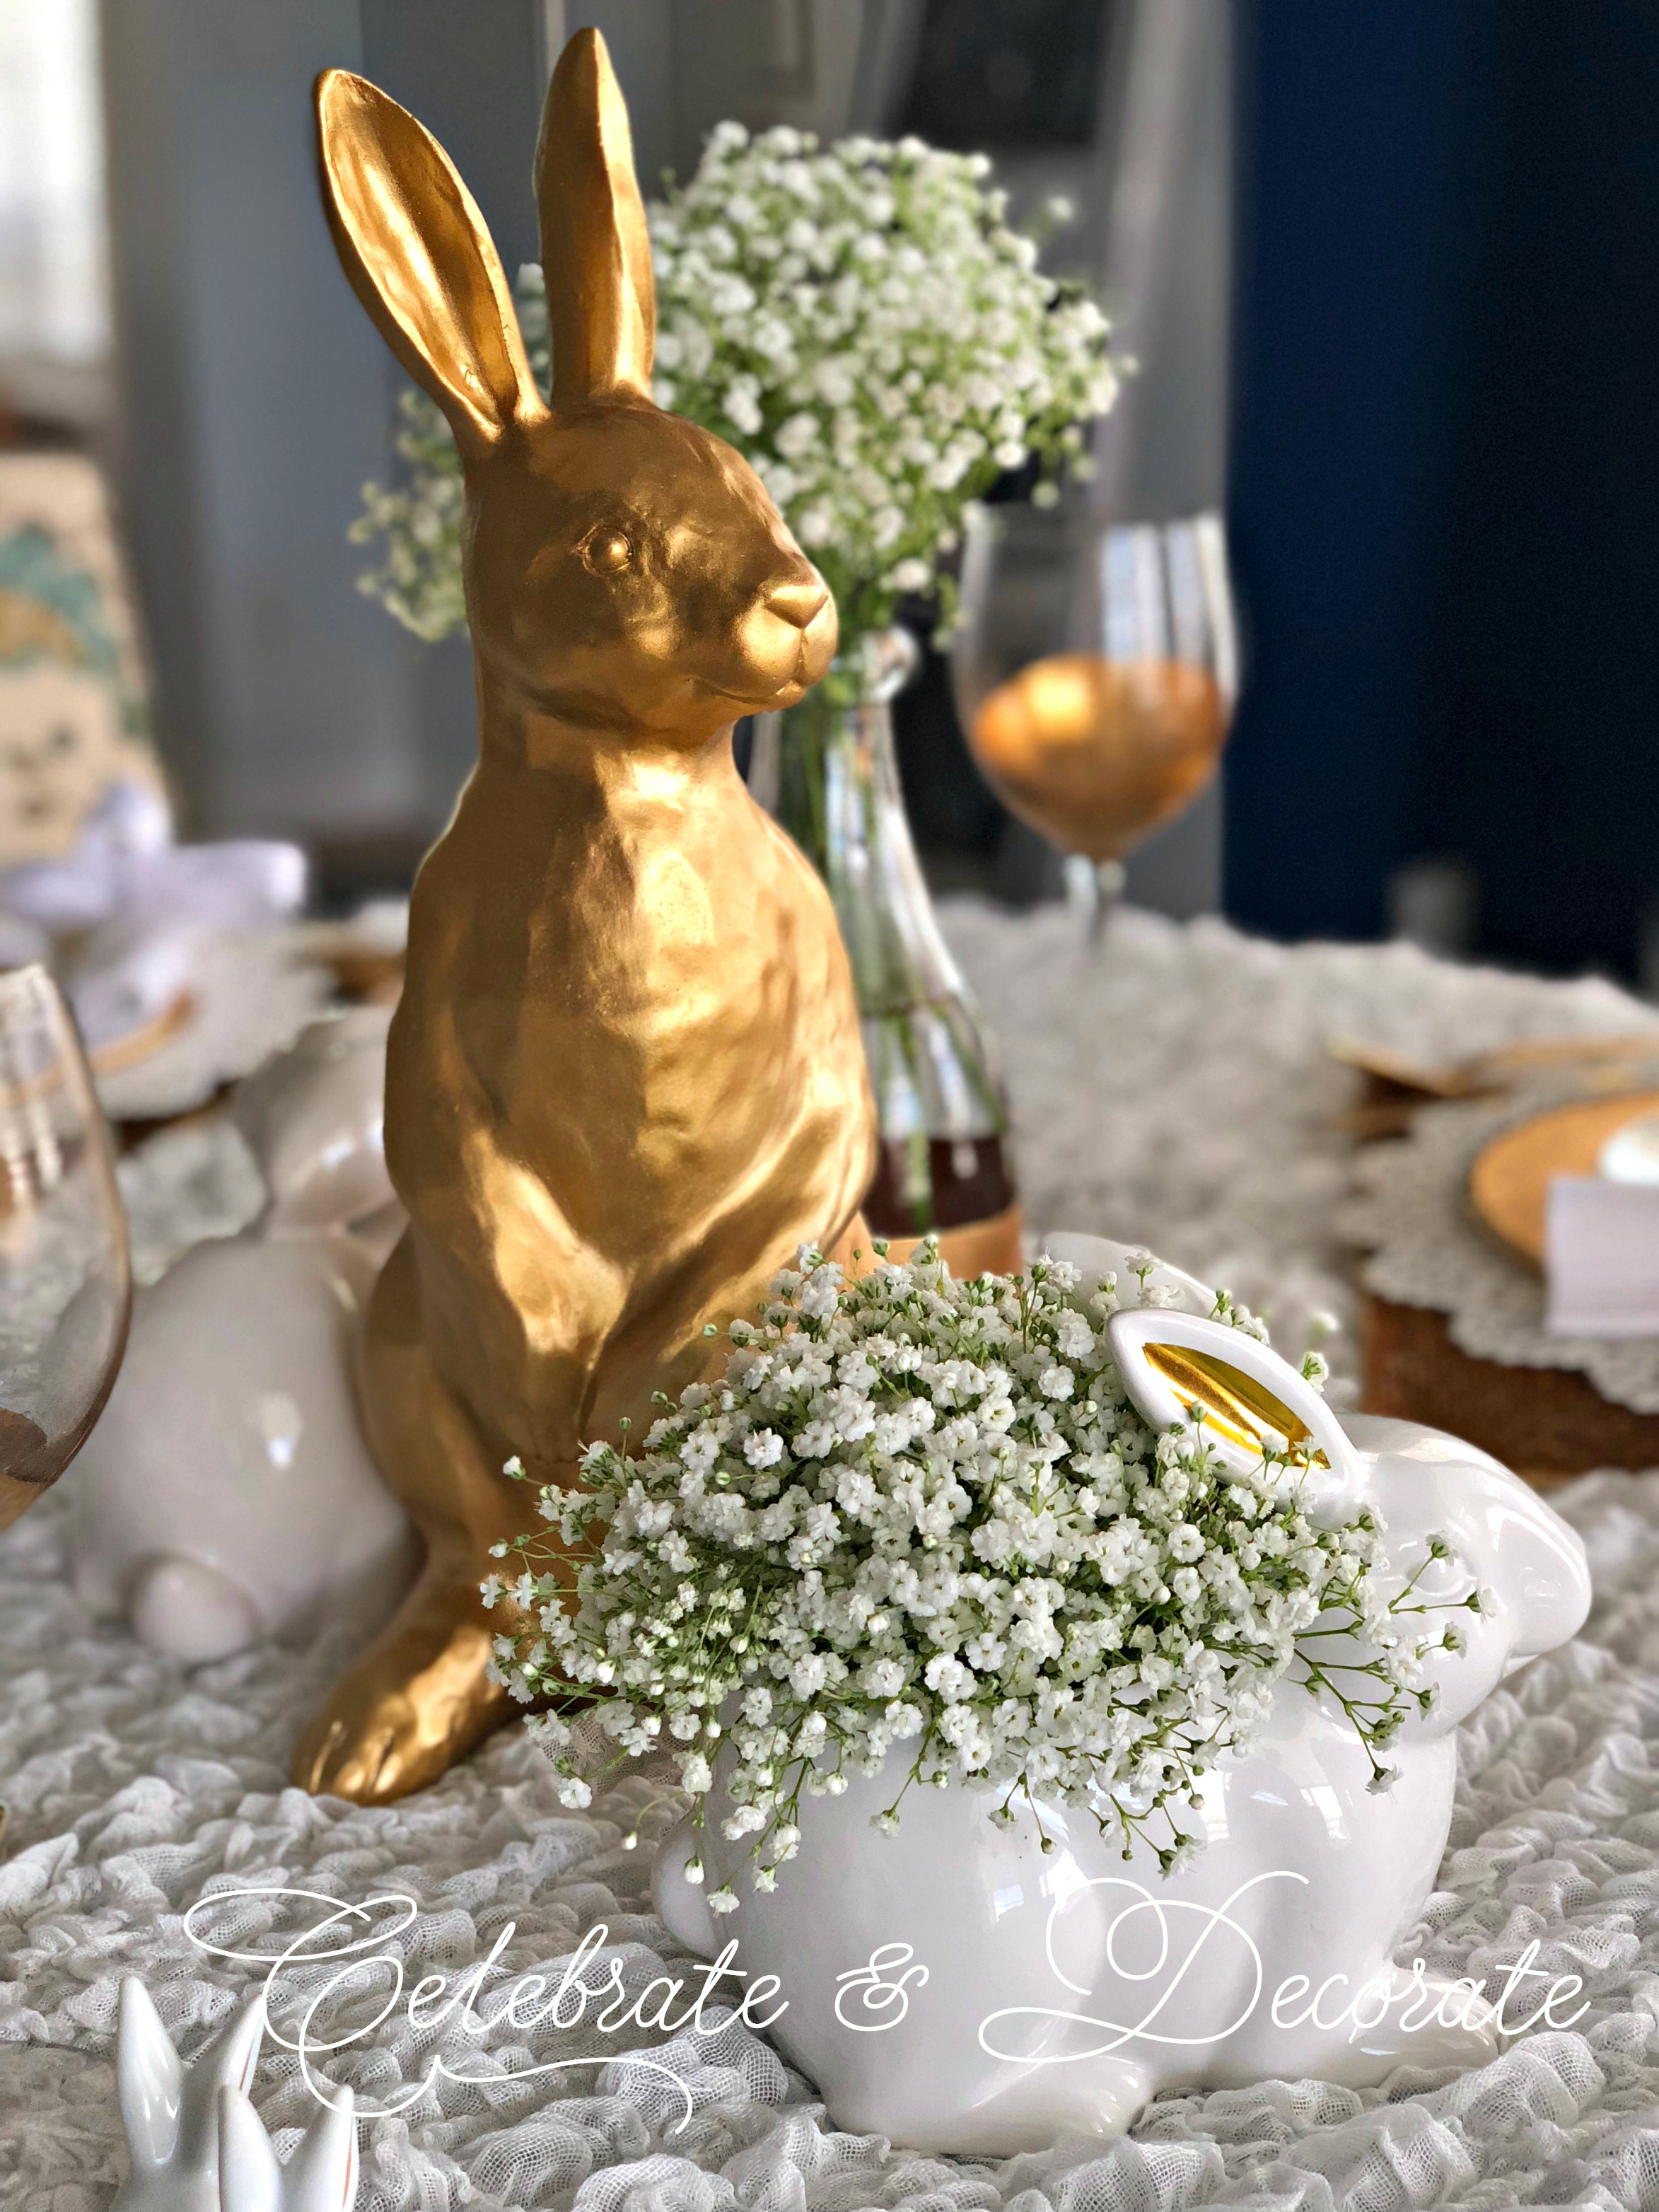 Spring Into an Easter Table Blog Hop  Celebrate  Decorate